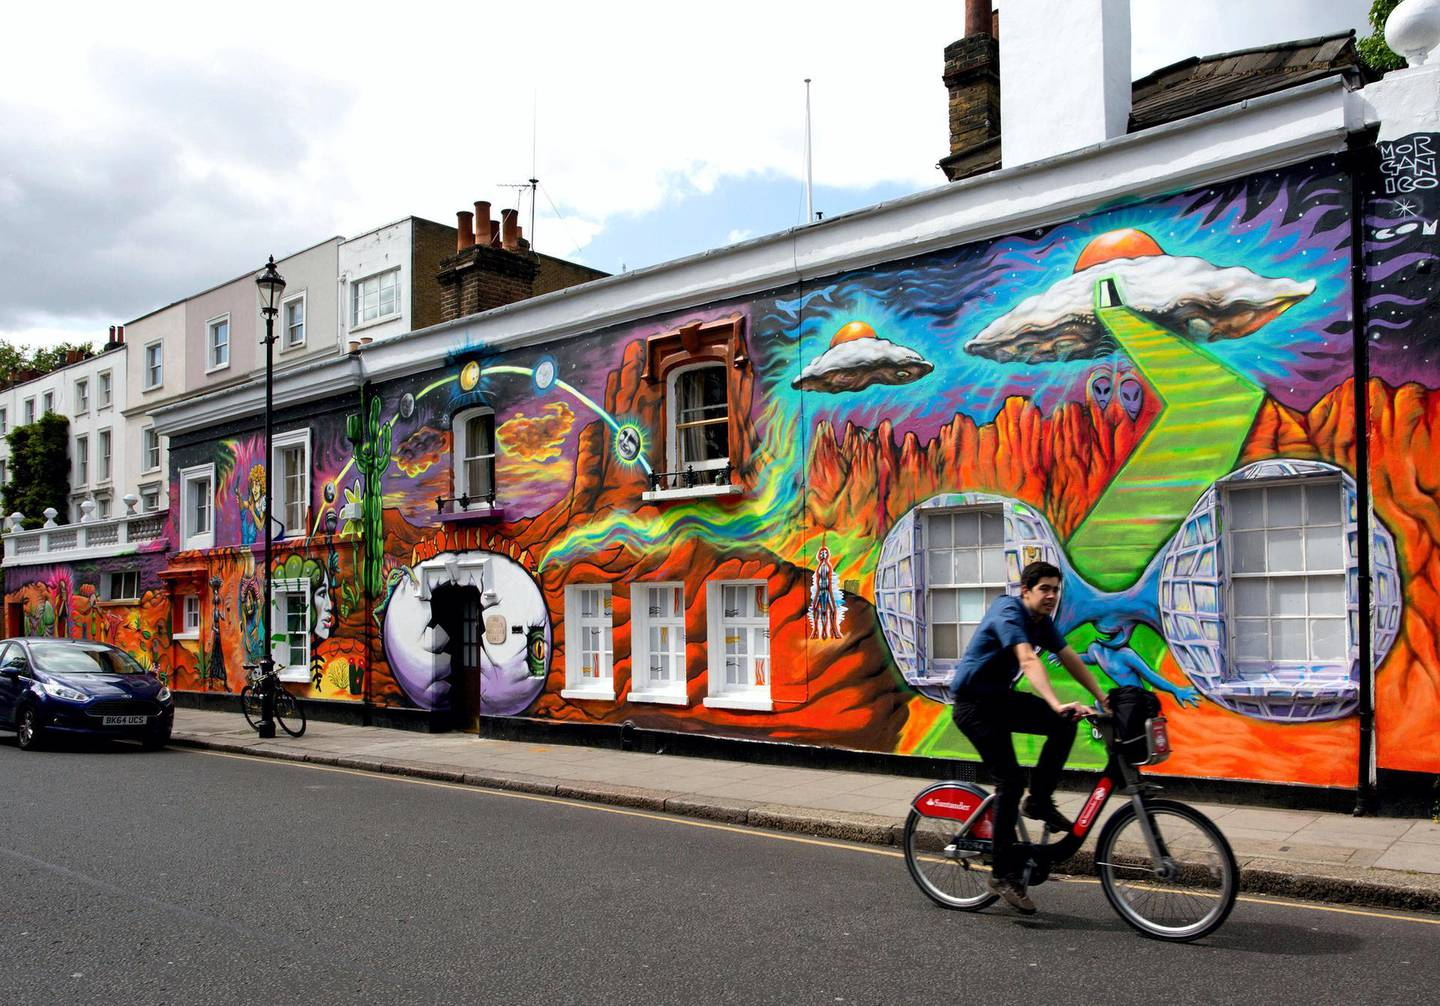 ERJ818 The outside of the Chelsea Arts Club in London has been transformed by a mural by street artist Morganico